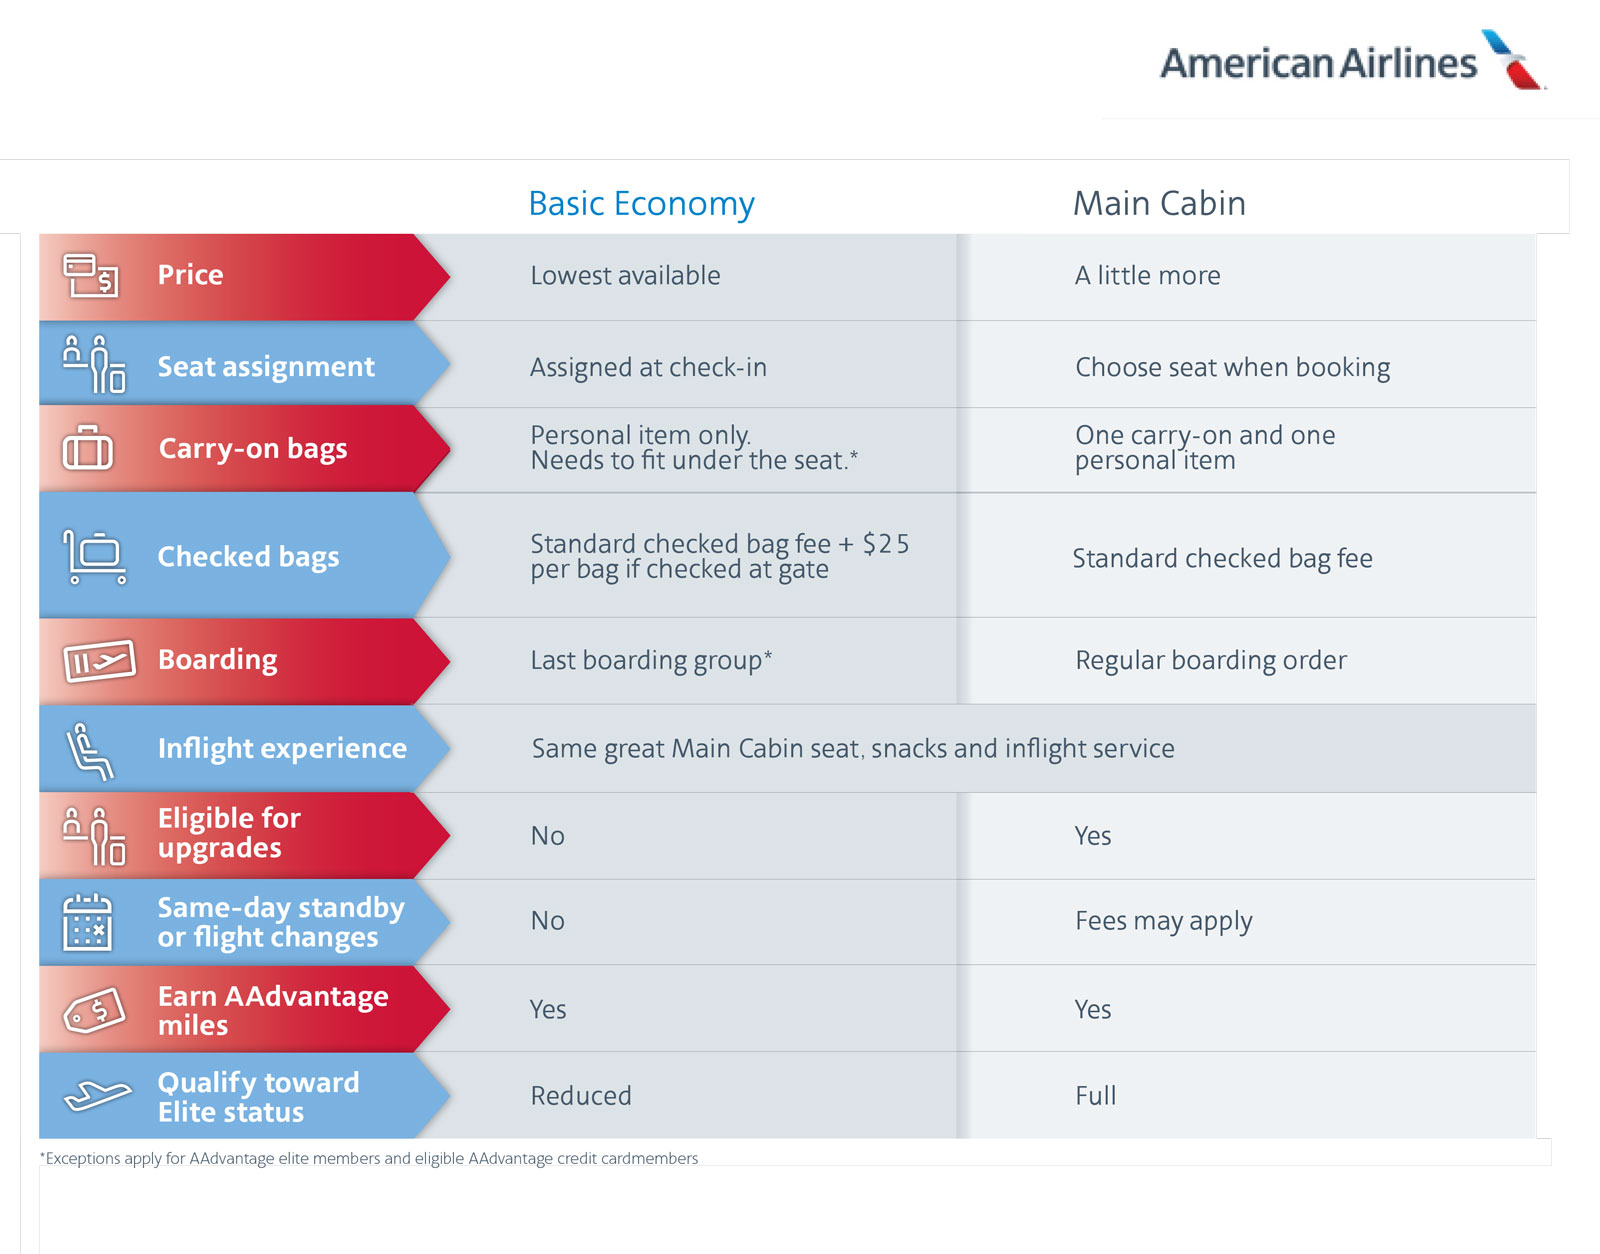 American Airlines' basic economy seats go on sale soon.